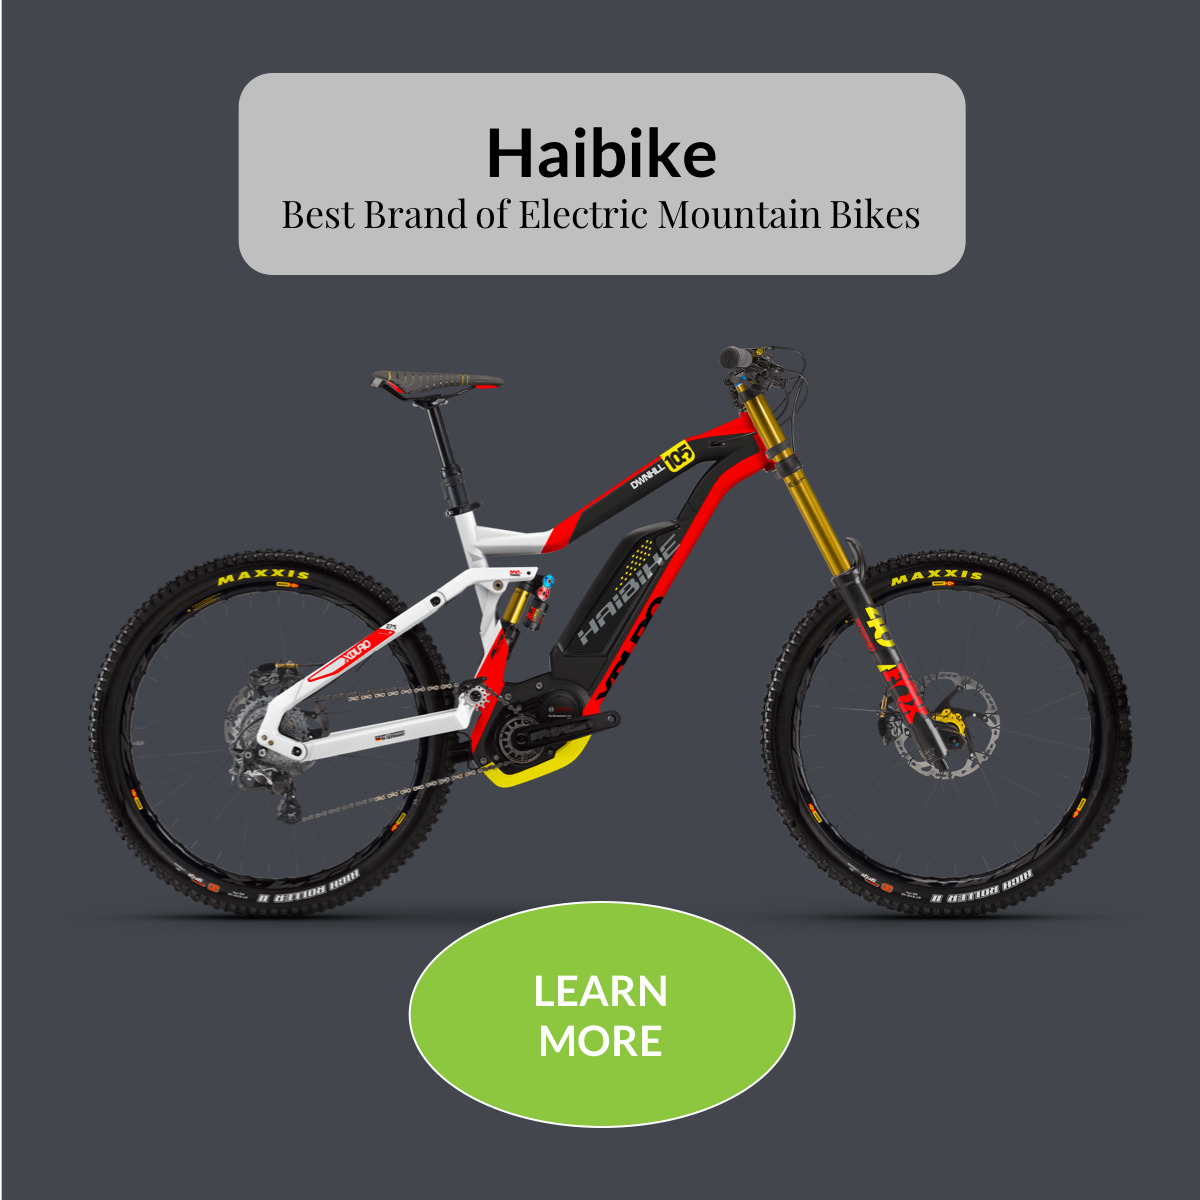 Haibike Best Brand of Electric Mountain Bikes